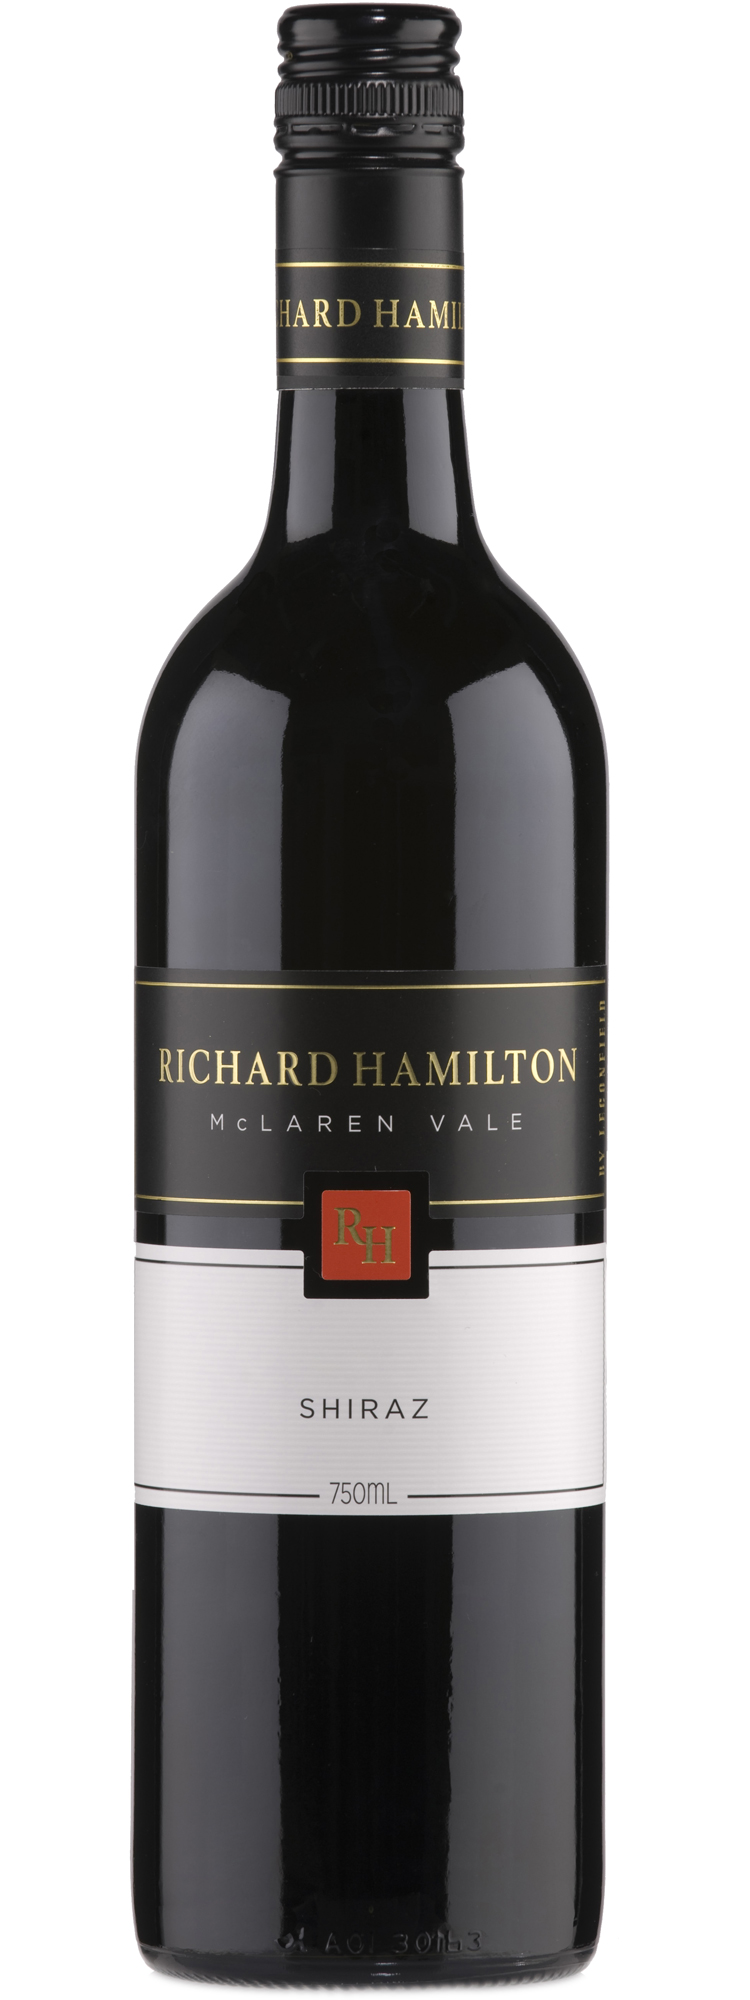 Richard Hamilton Shiraz 2012 The Wine Front